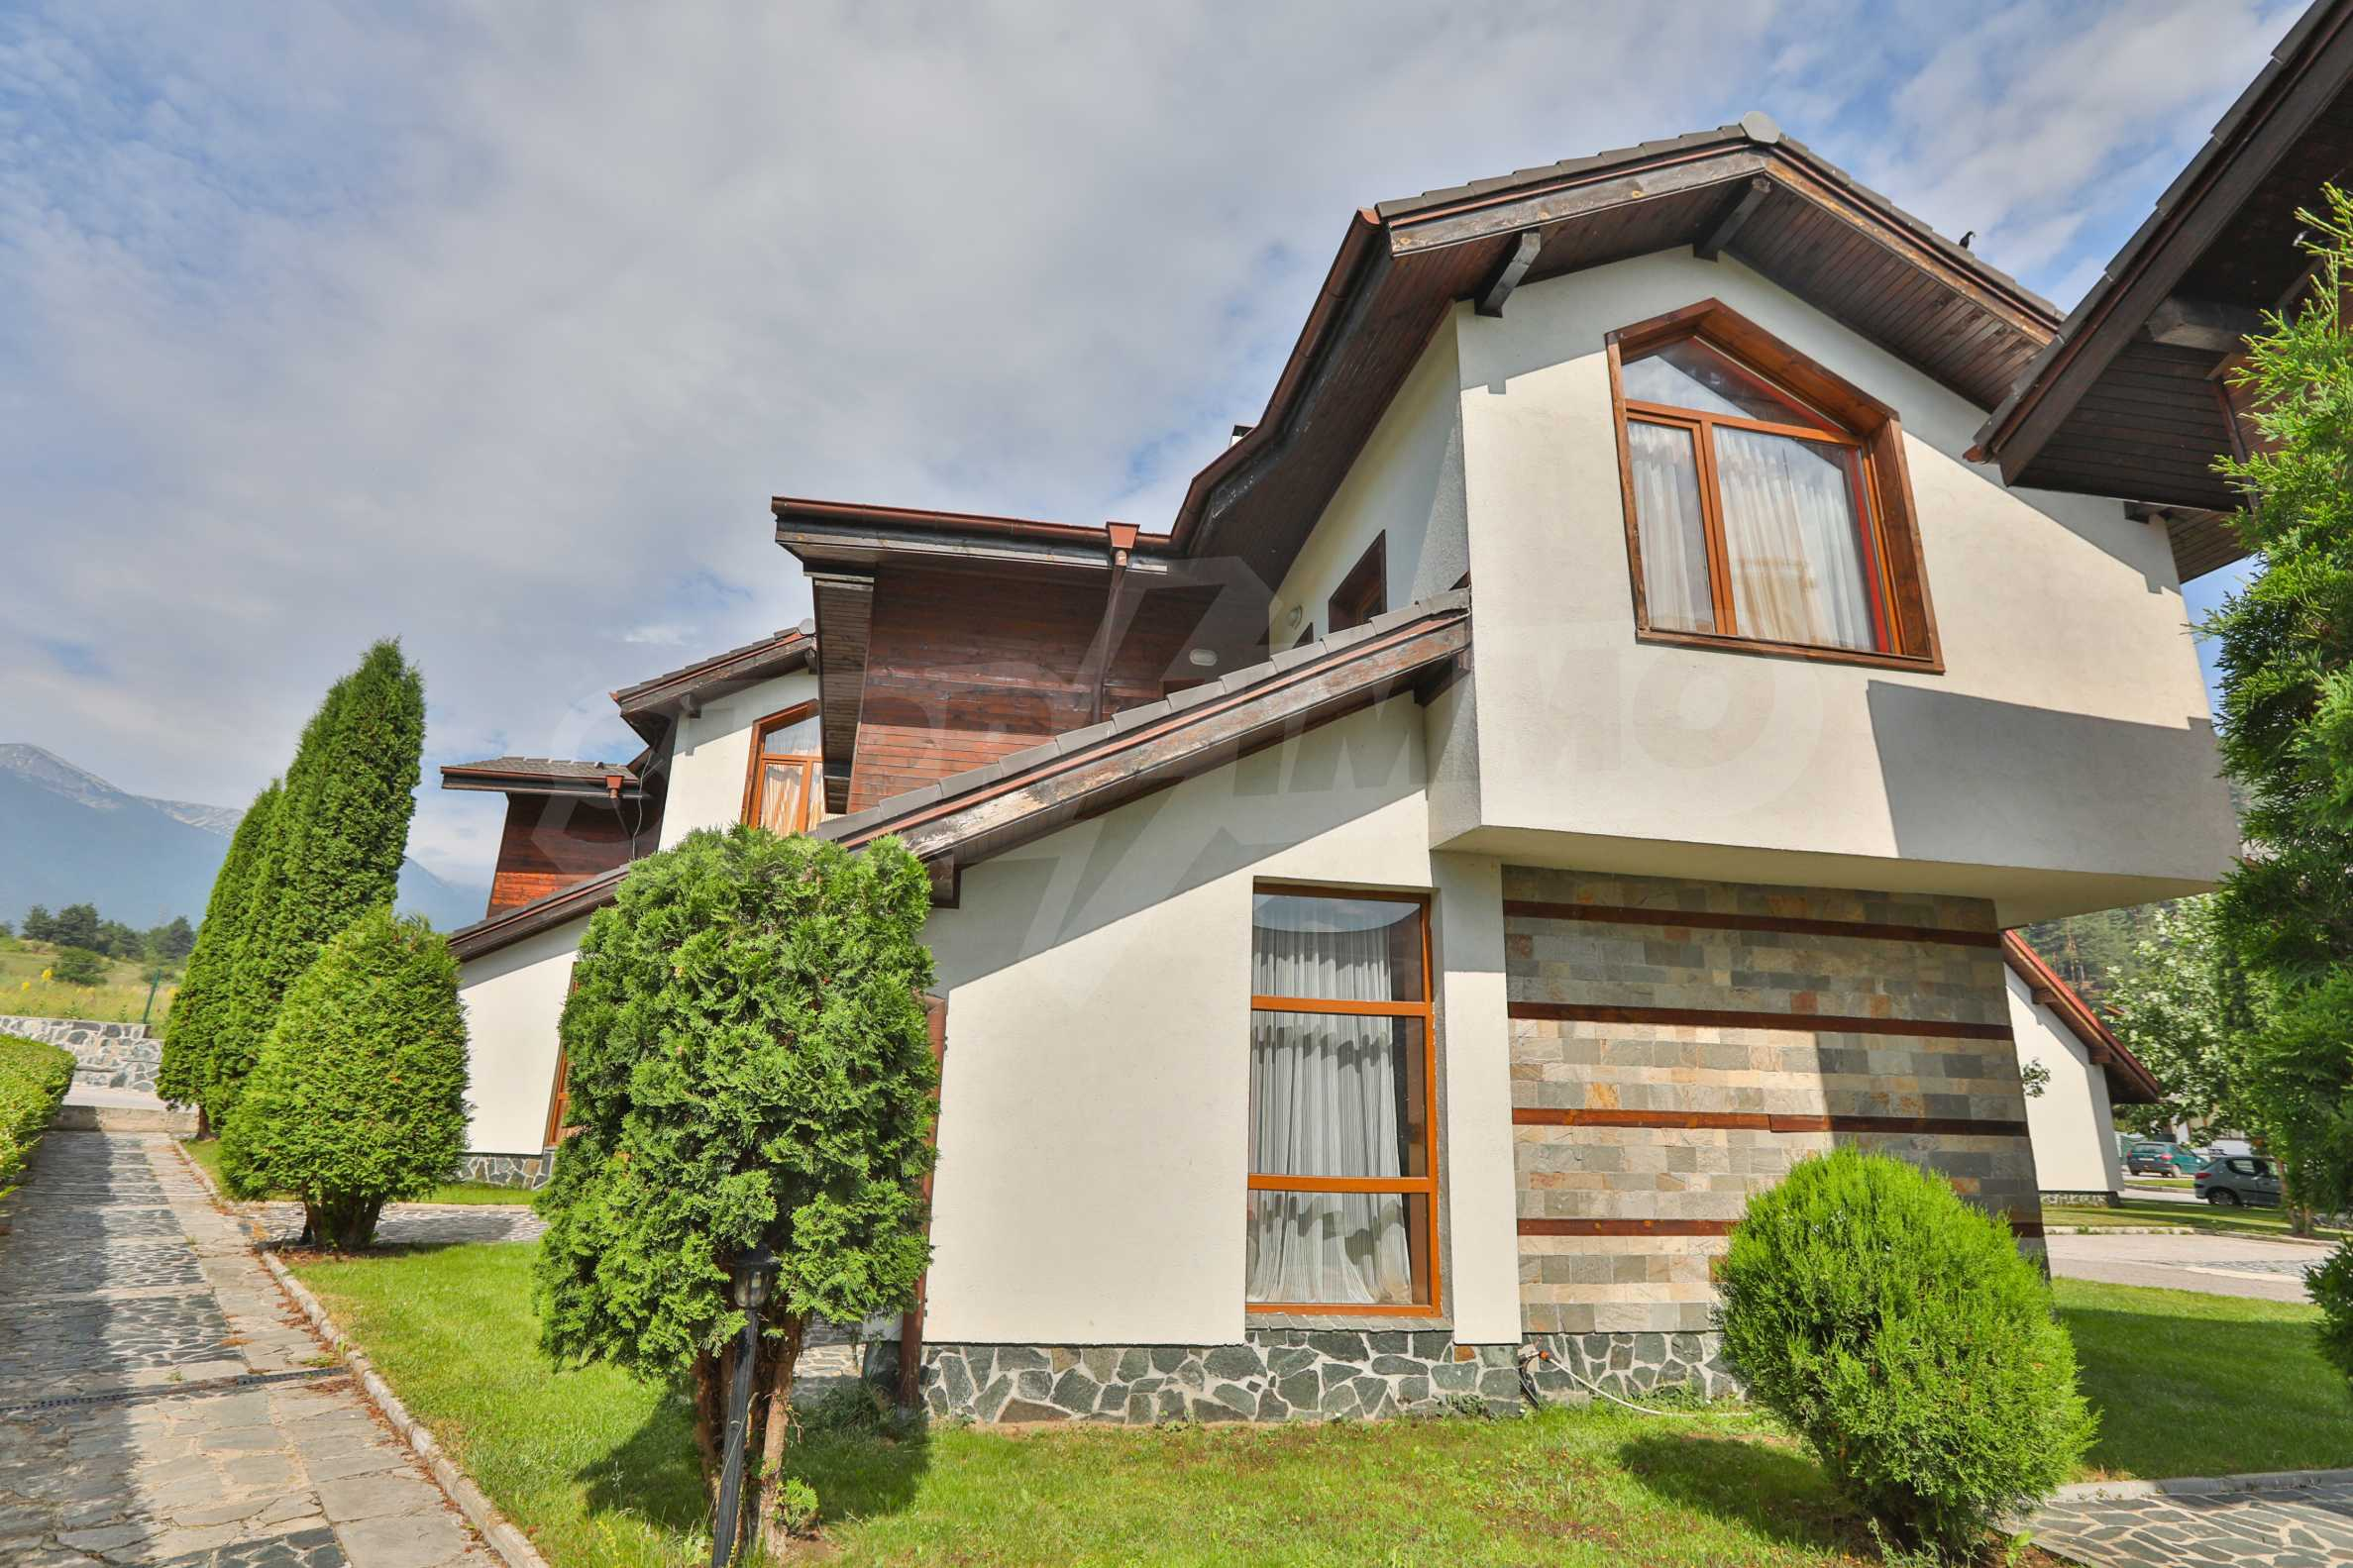 Fully furnished two-bedroom chalet in Redenka Holiday Club 1